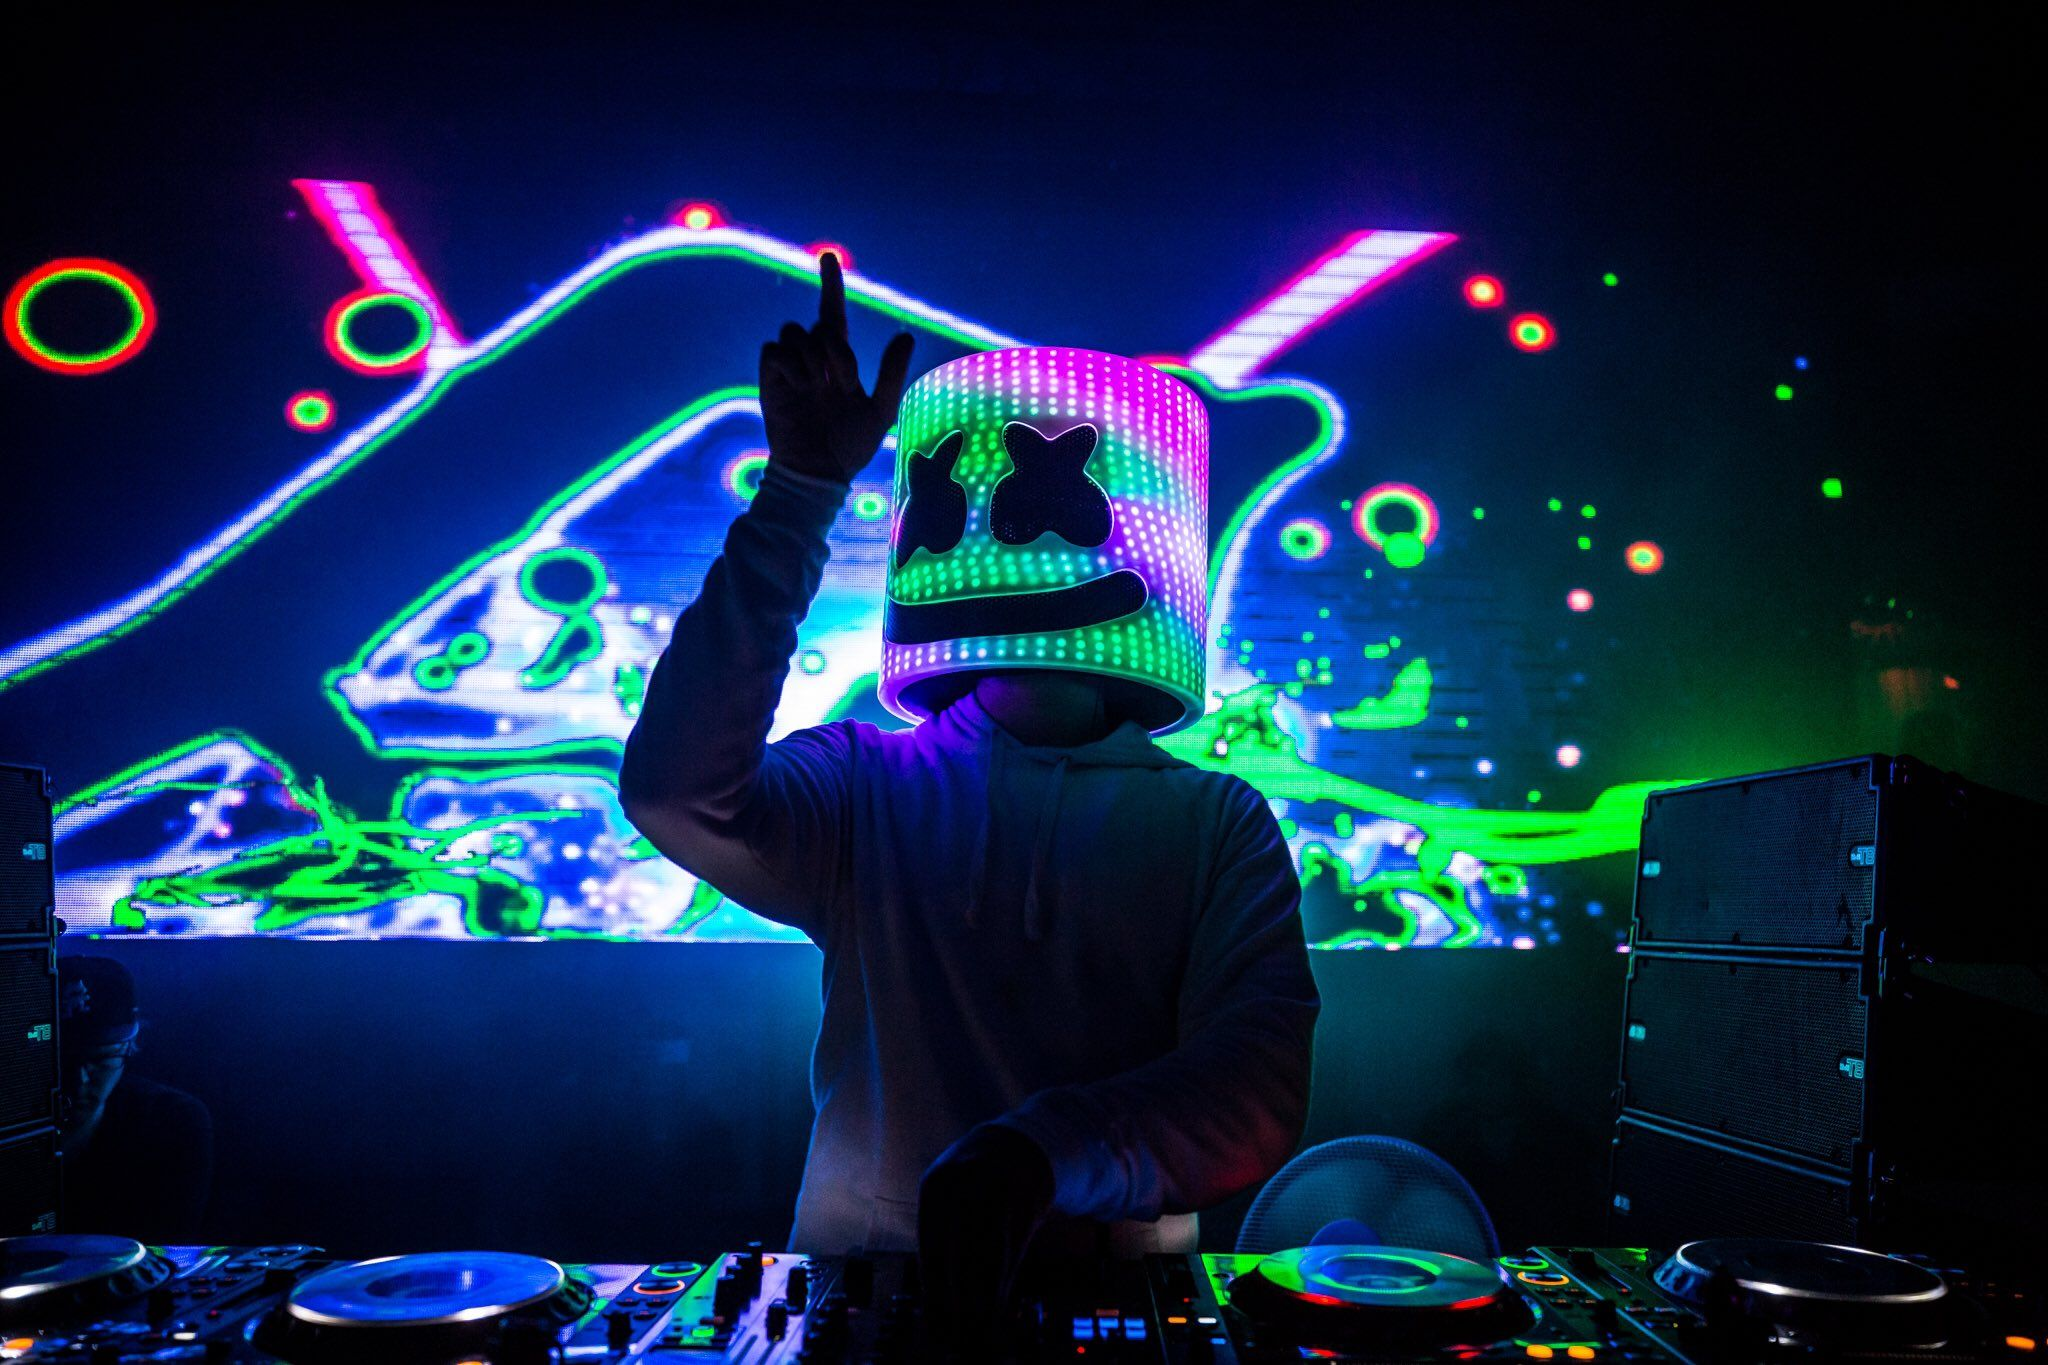 Marshmello Dj Hd Marshmello Dj Wallpapers Pinterest Music